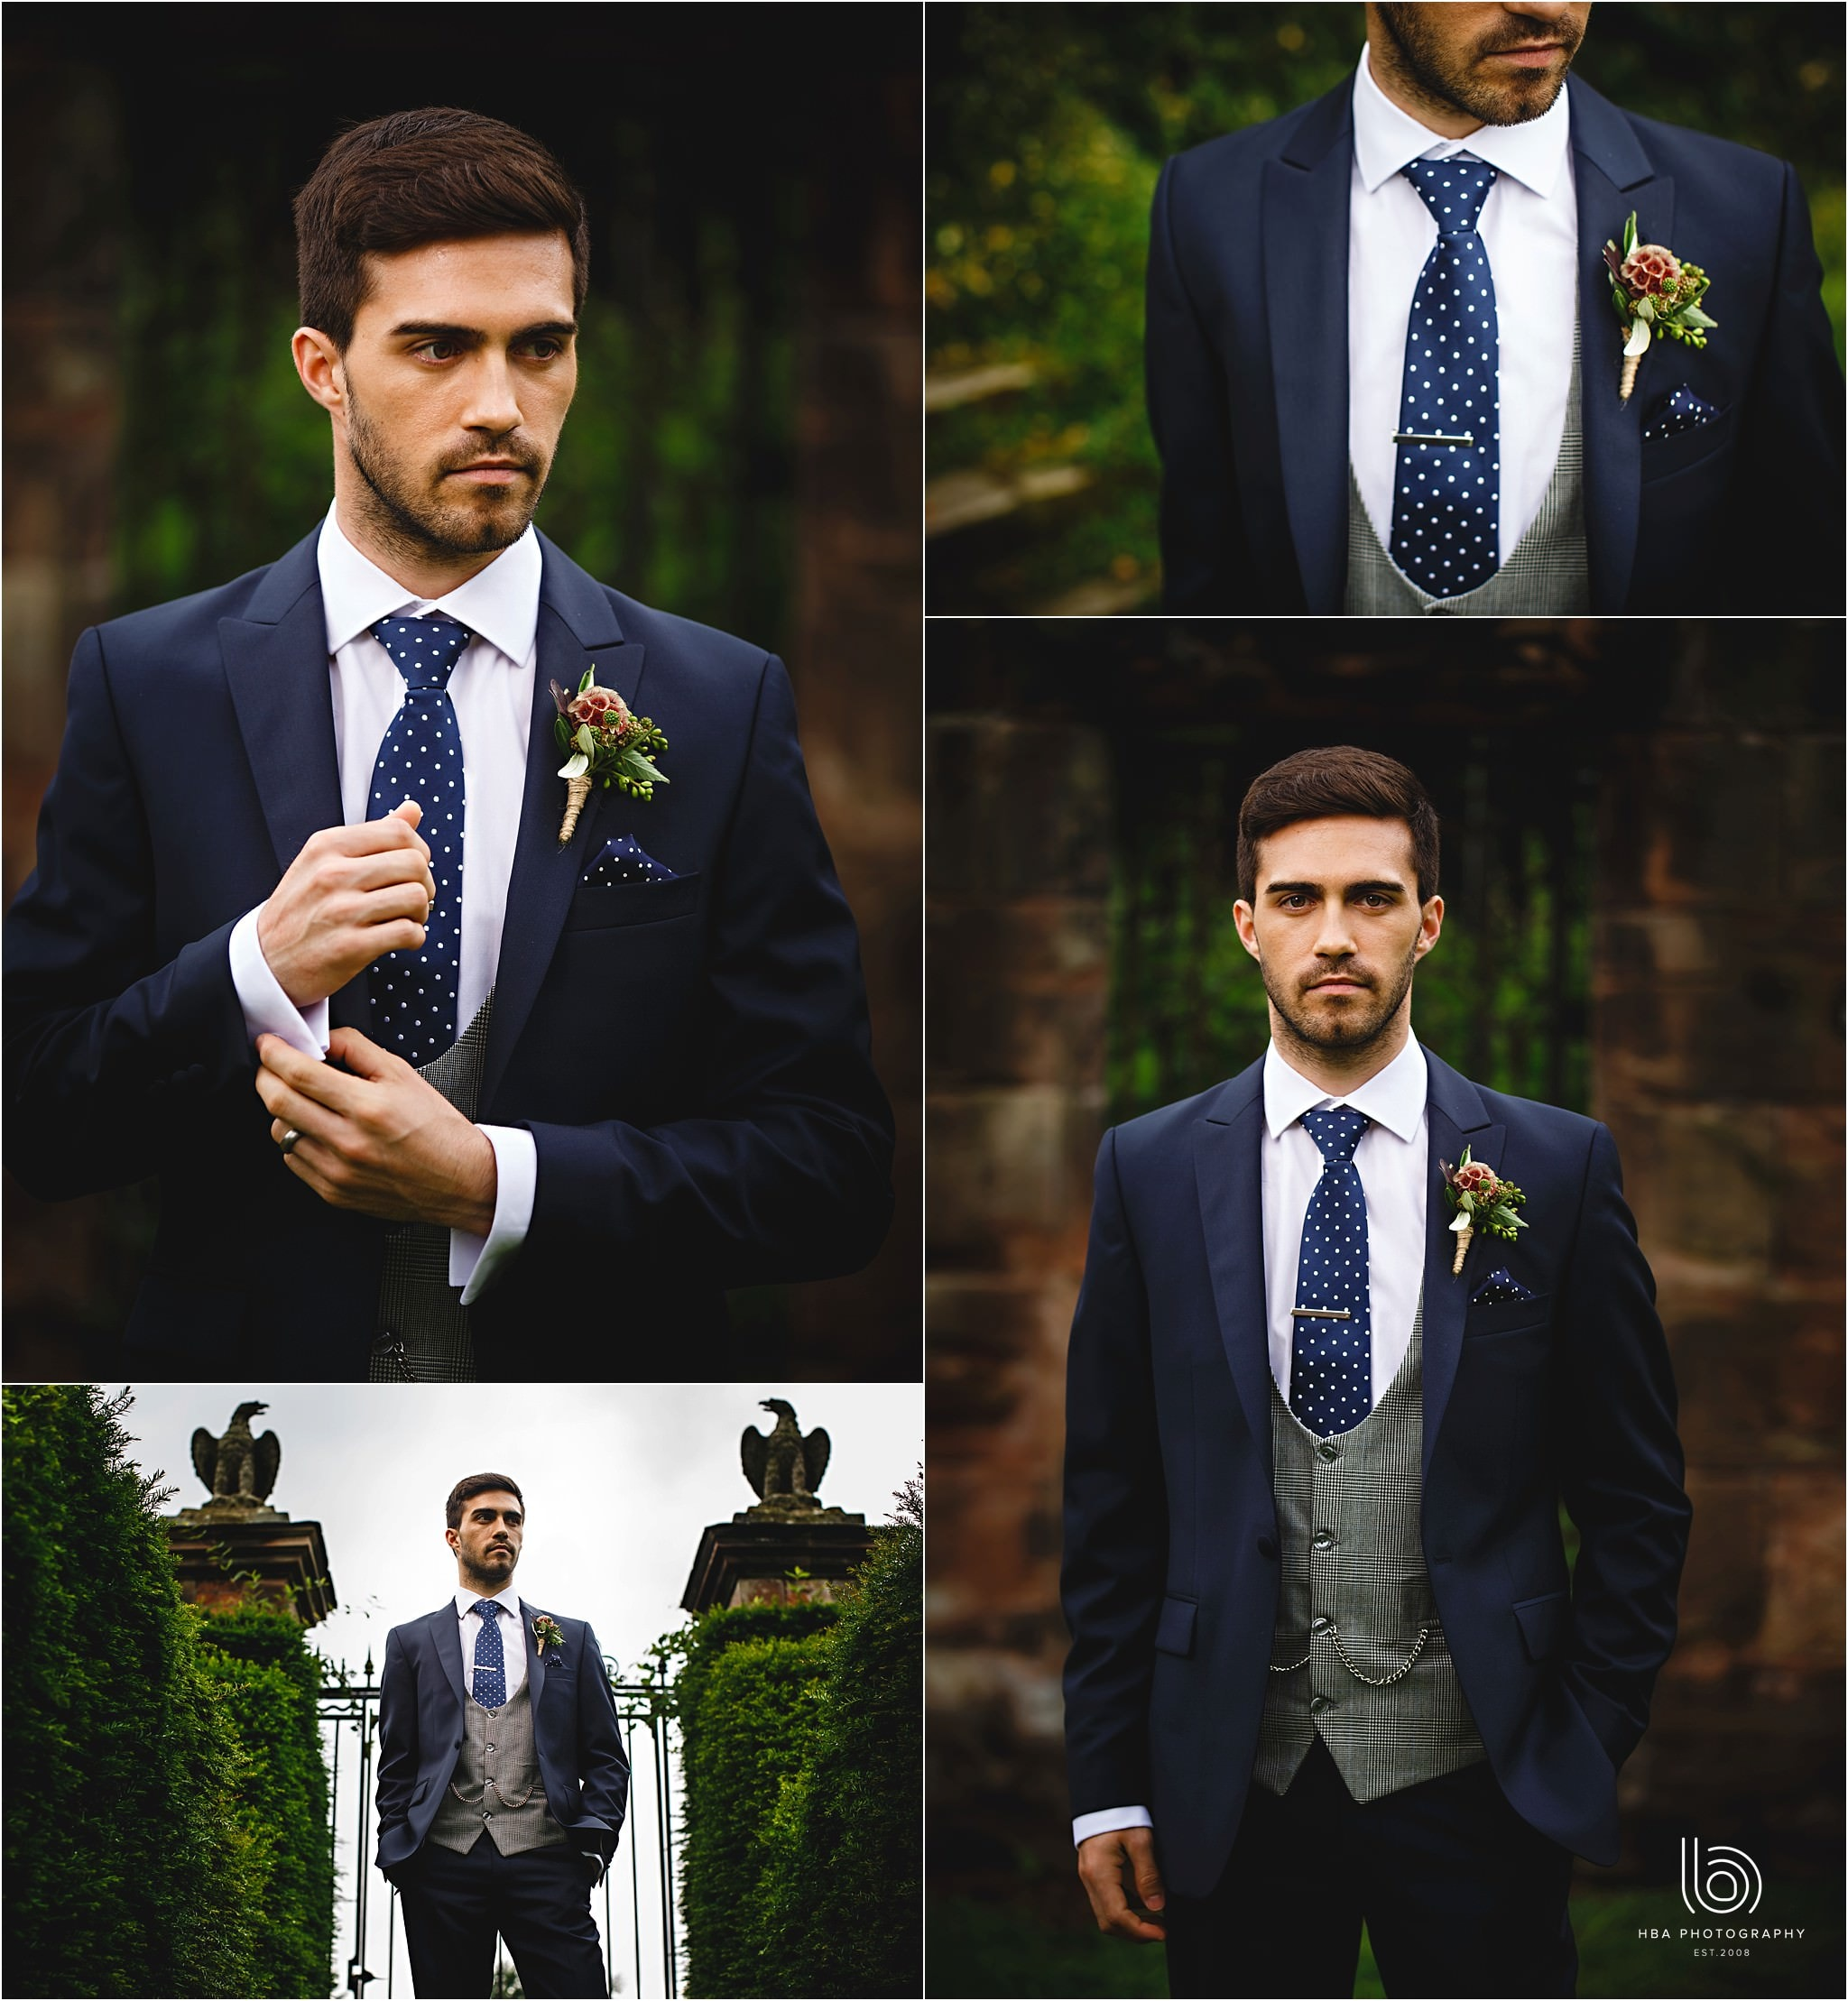 the groom looking amazing in his blue suit